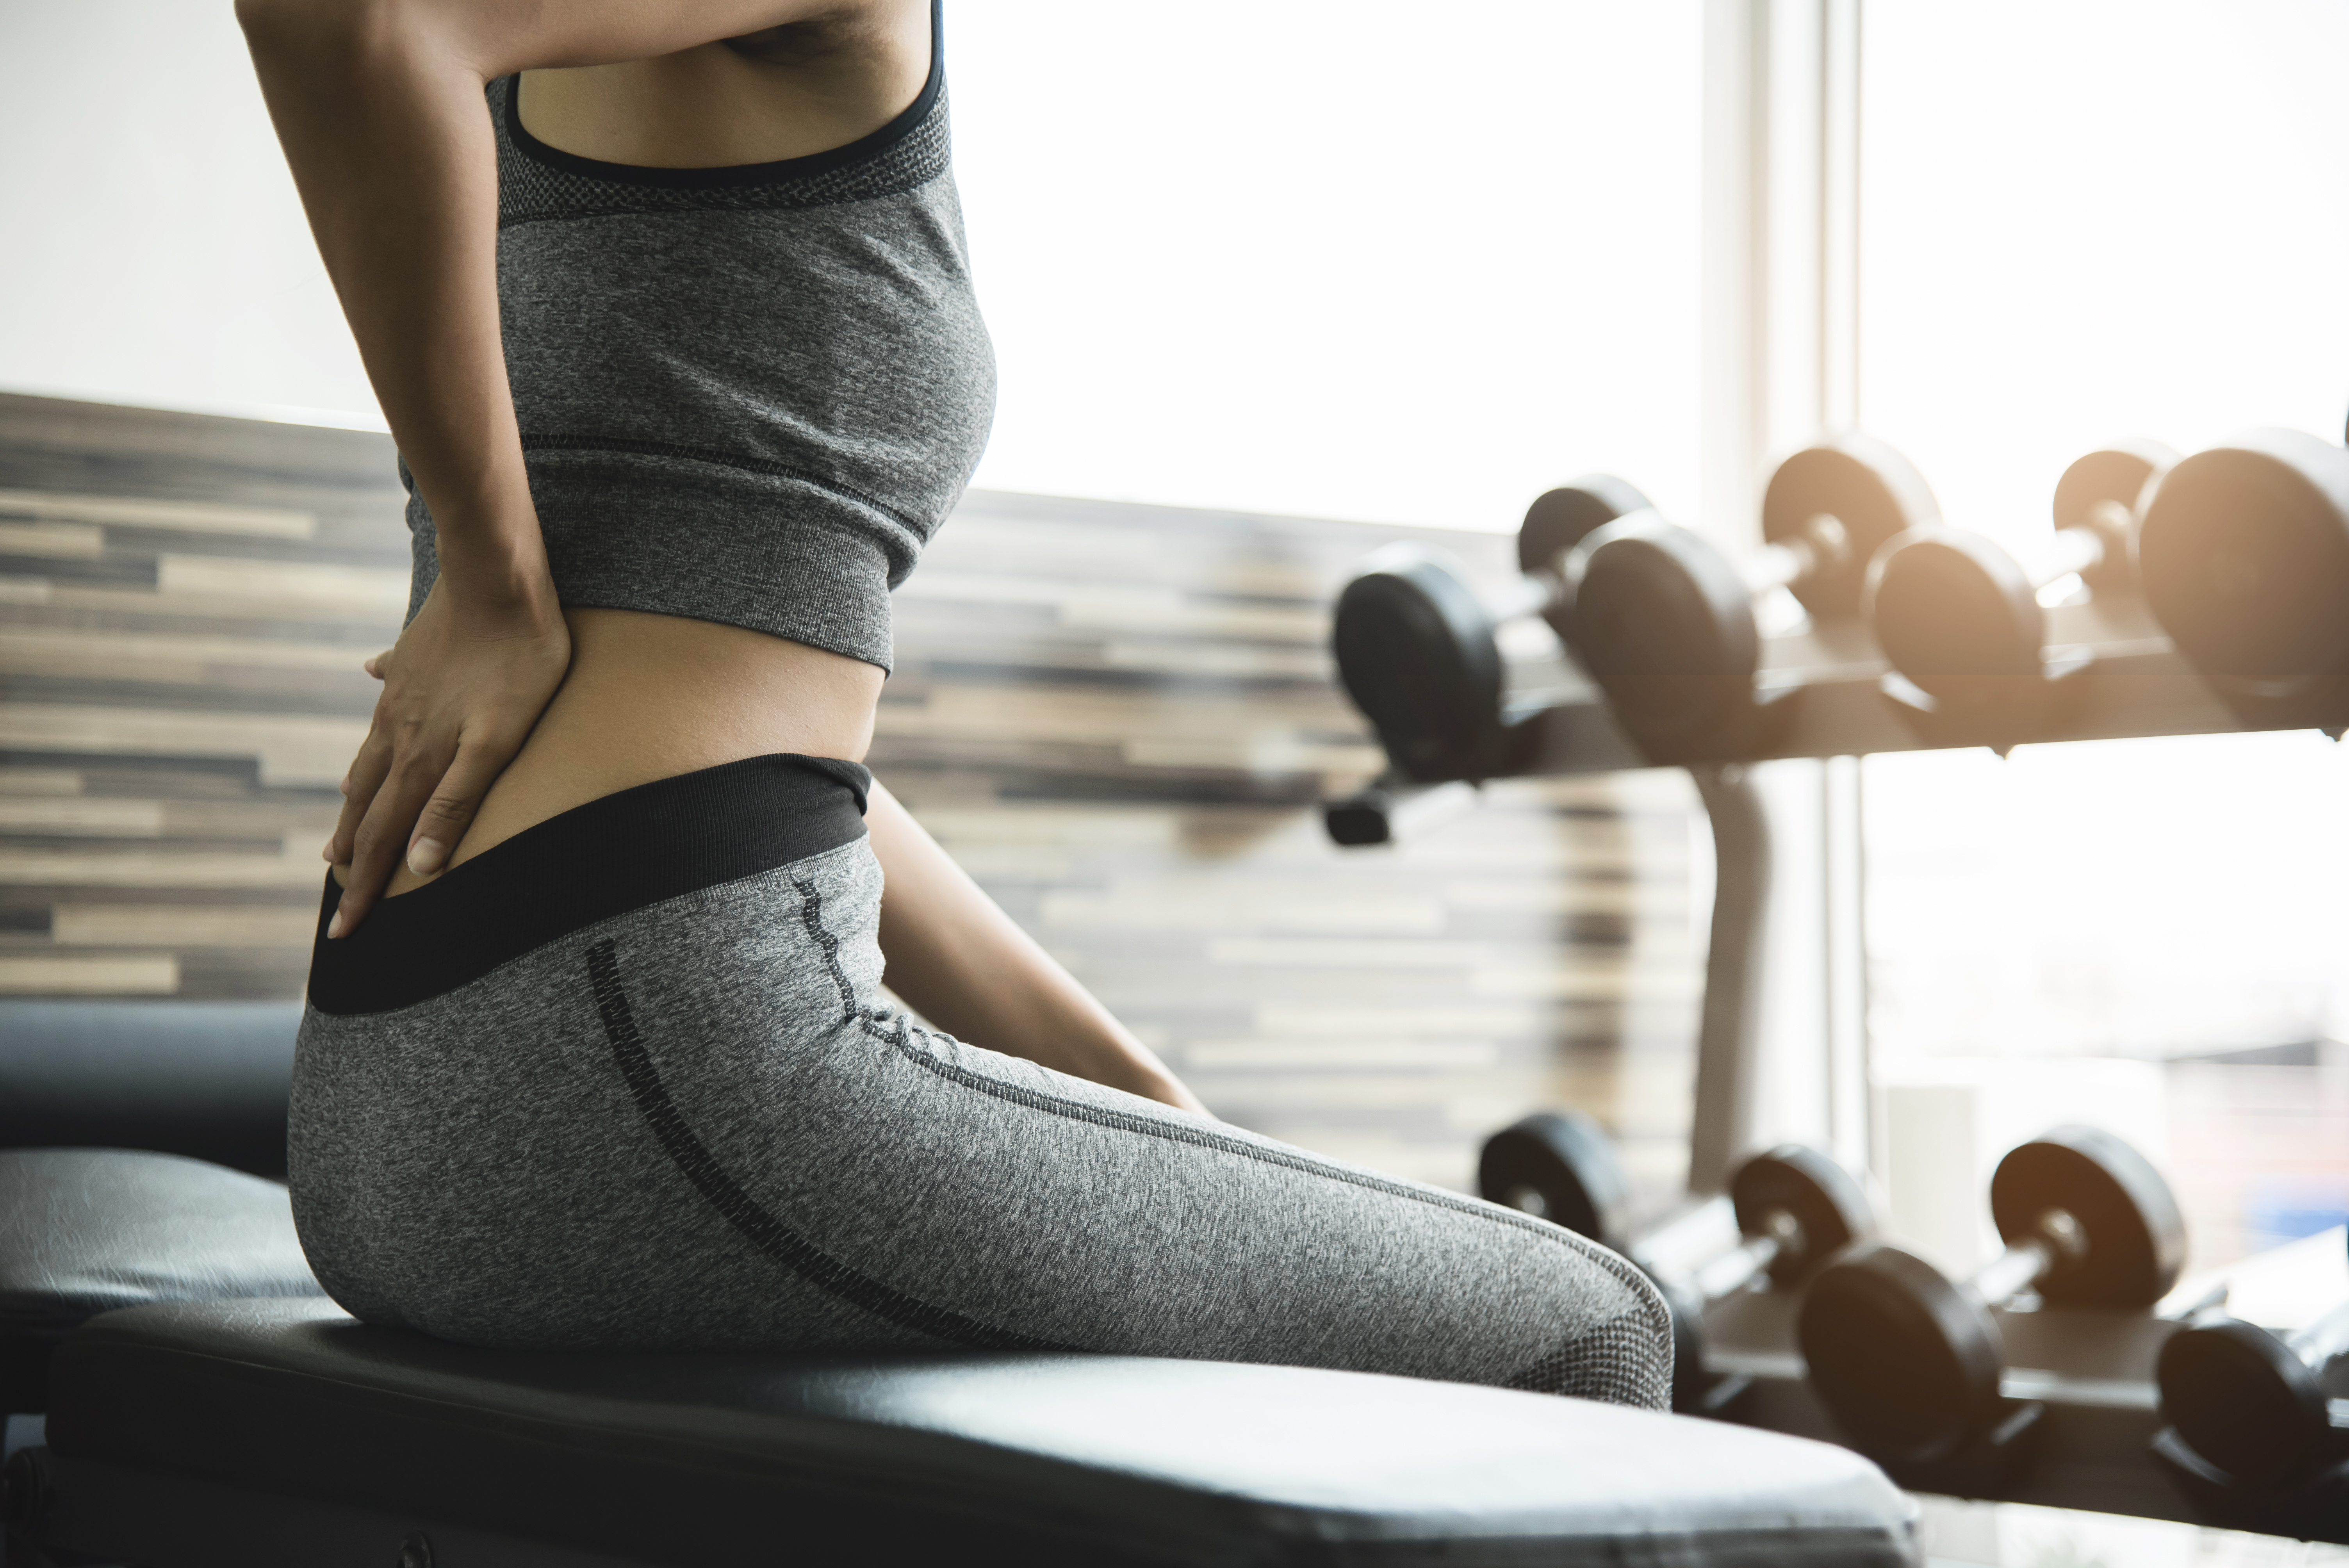 Injured Working on Your Summer Body? Chiropractic Care Can Help